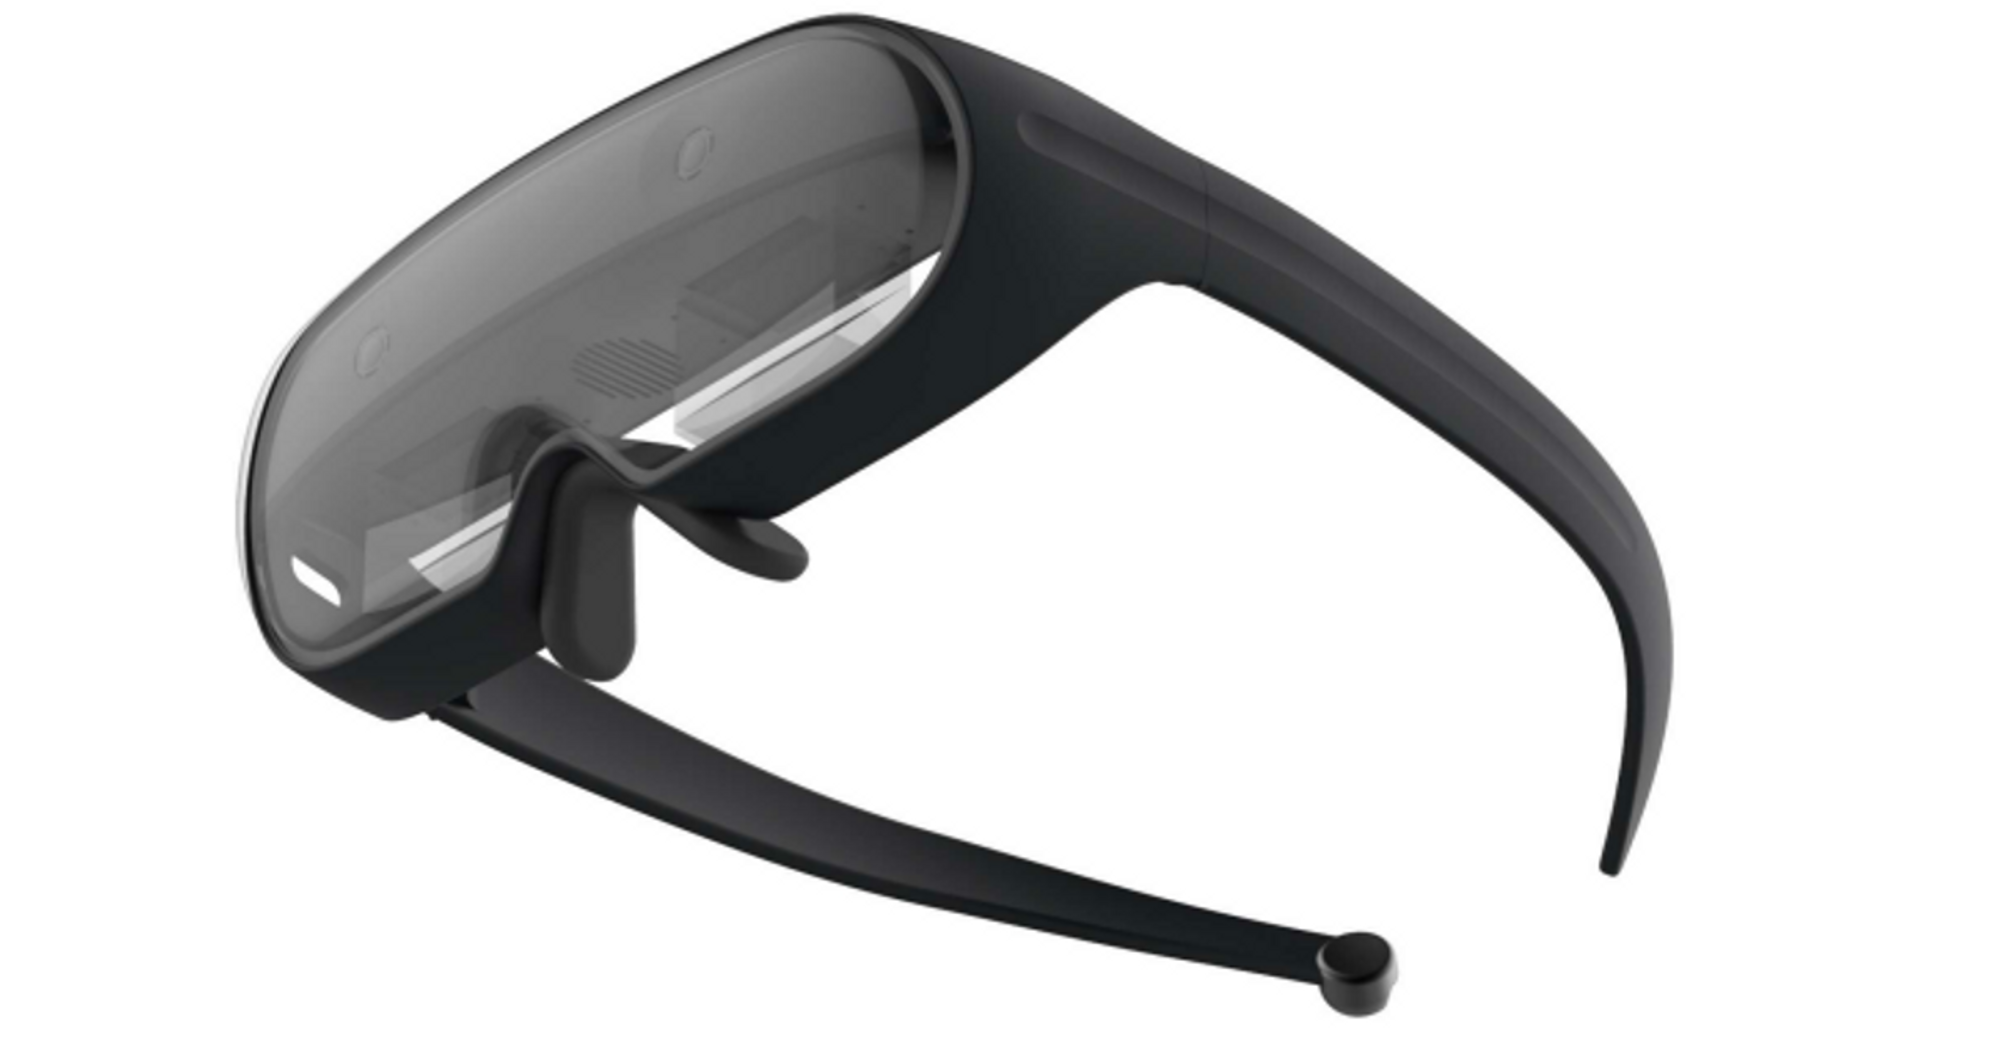 Samsung augmented reality smart glasses appear in patent - Gearbrain